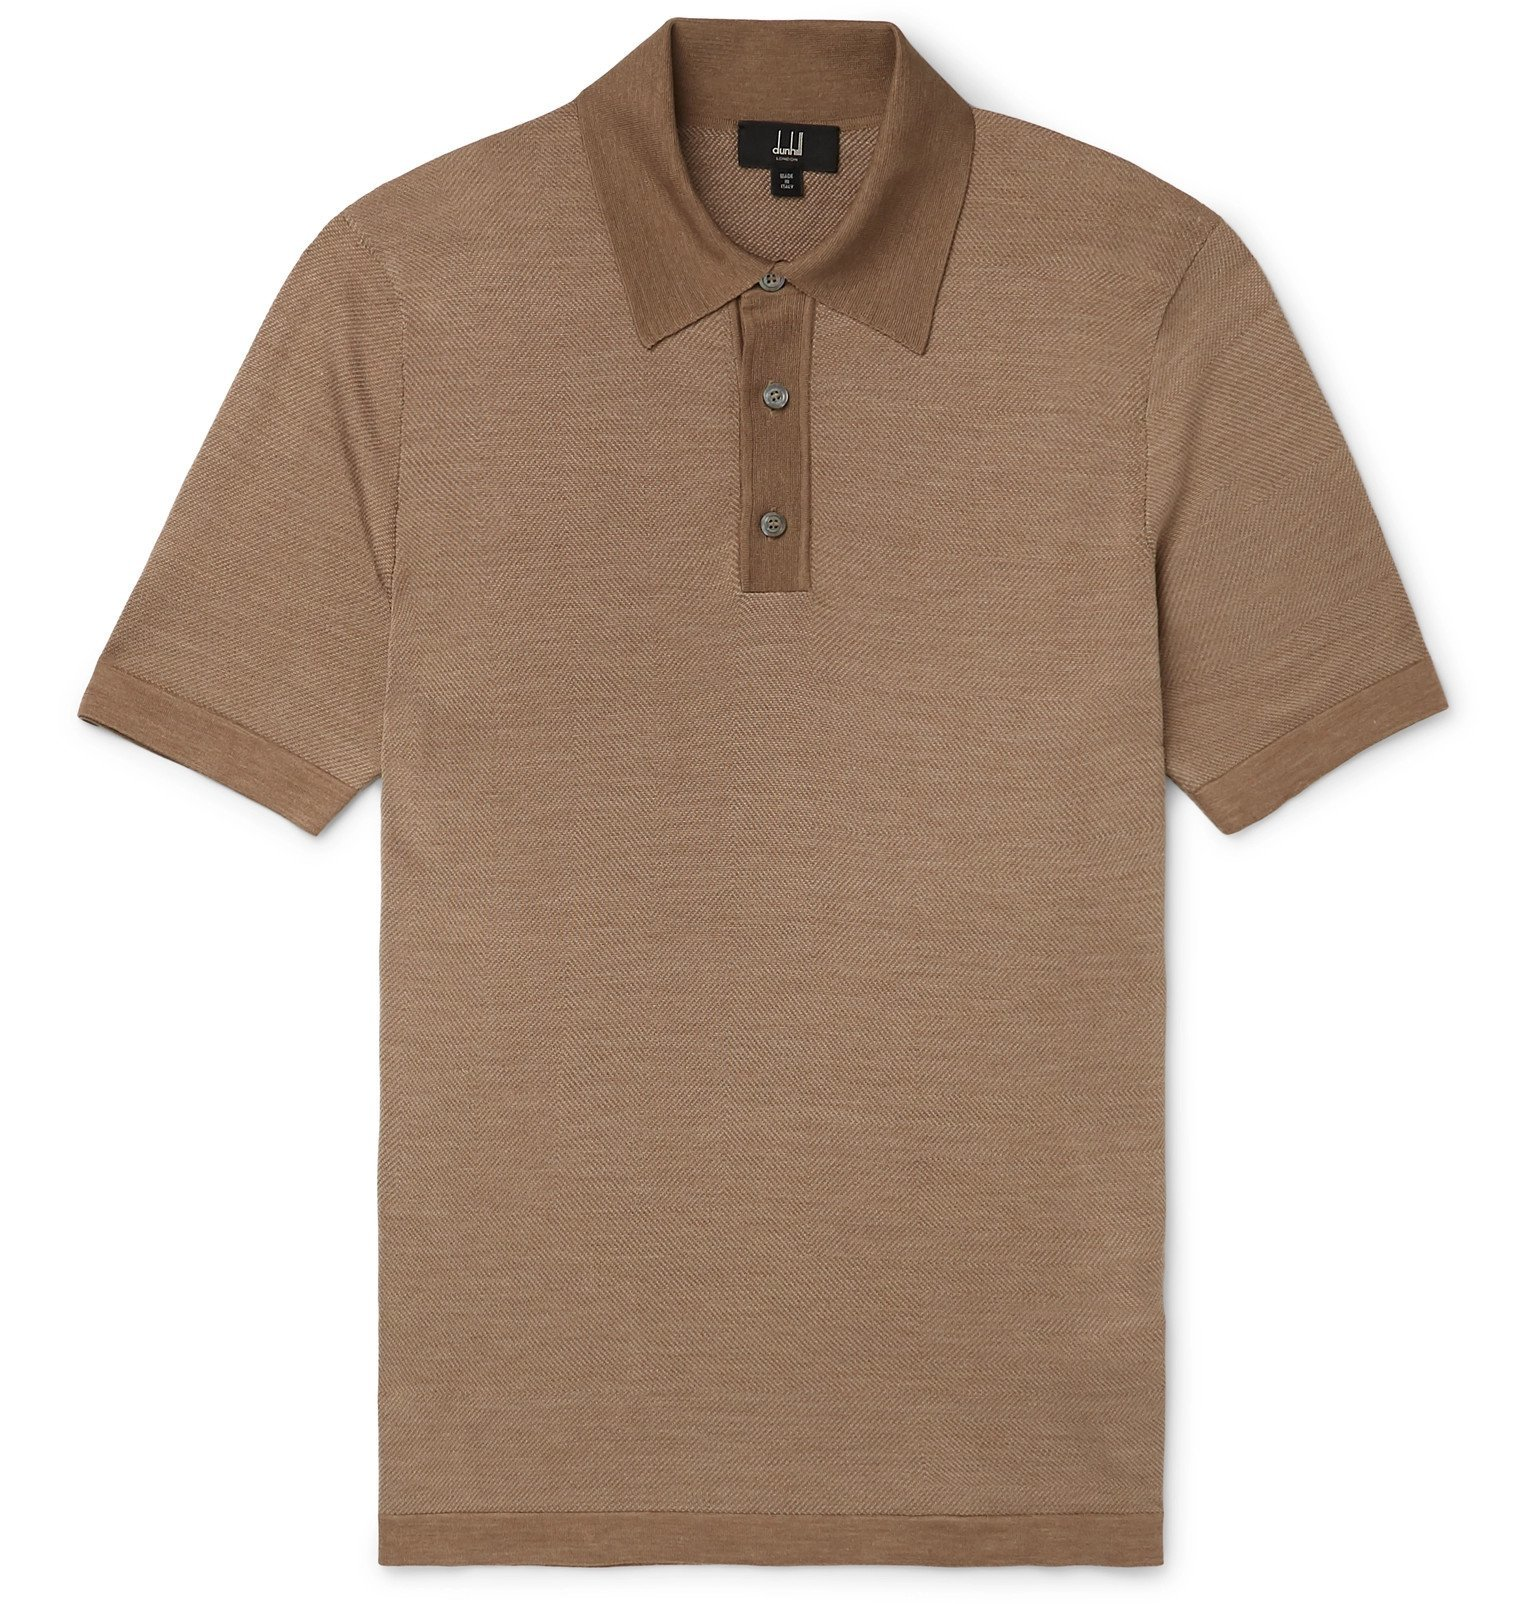 Dunhill - Herringbone-Knit Mulberry Silk Polo Shirt - Brown